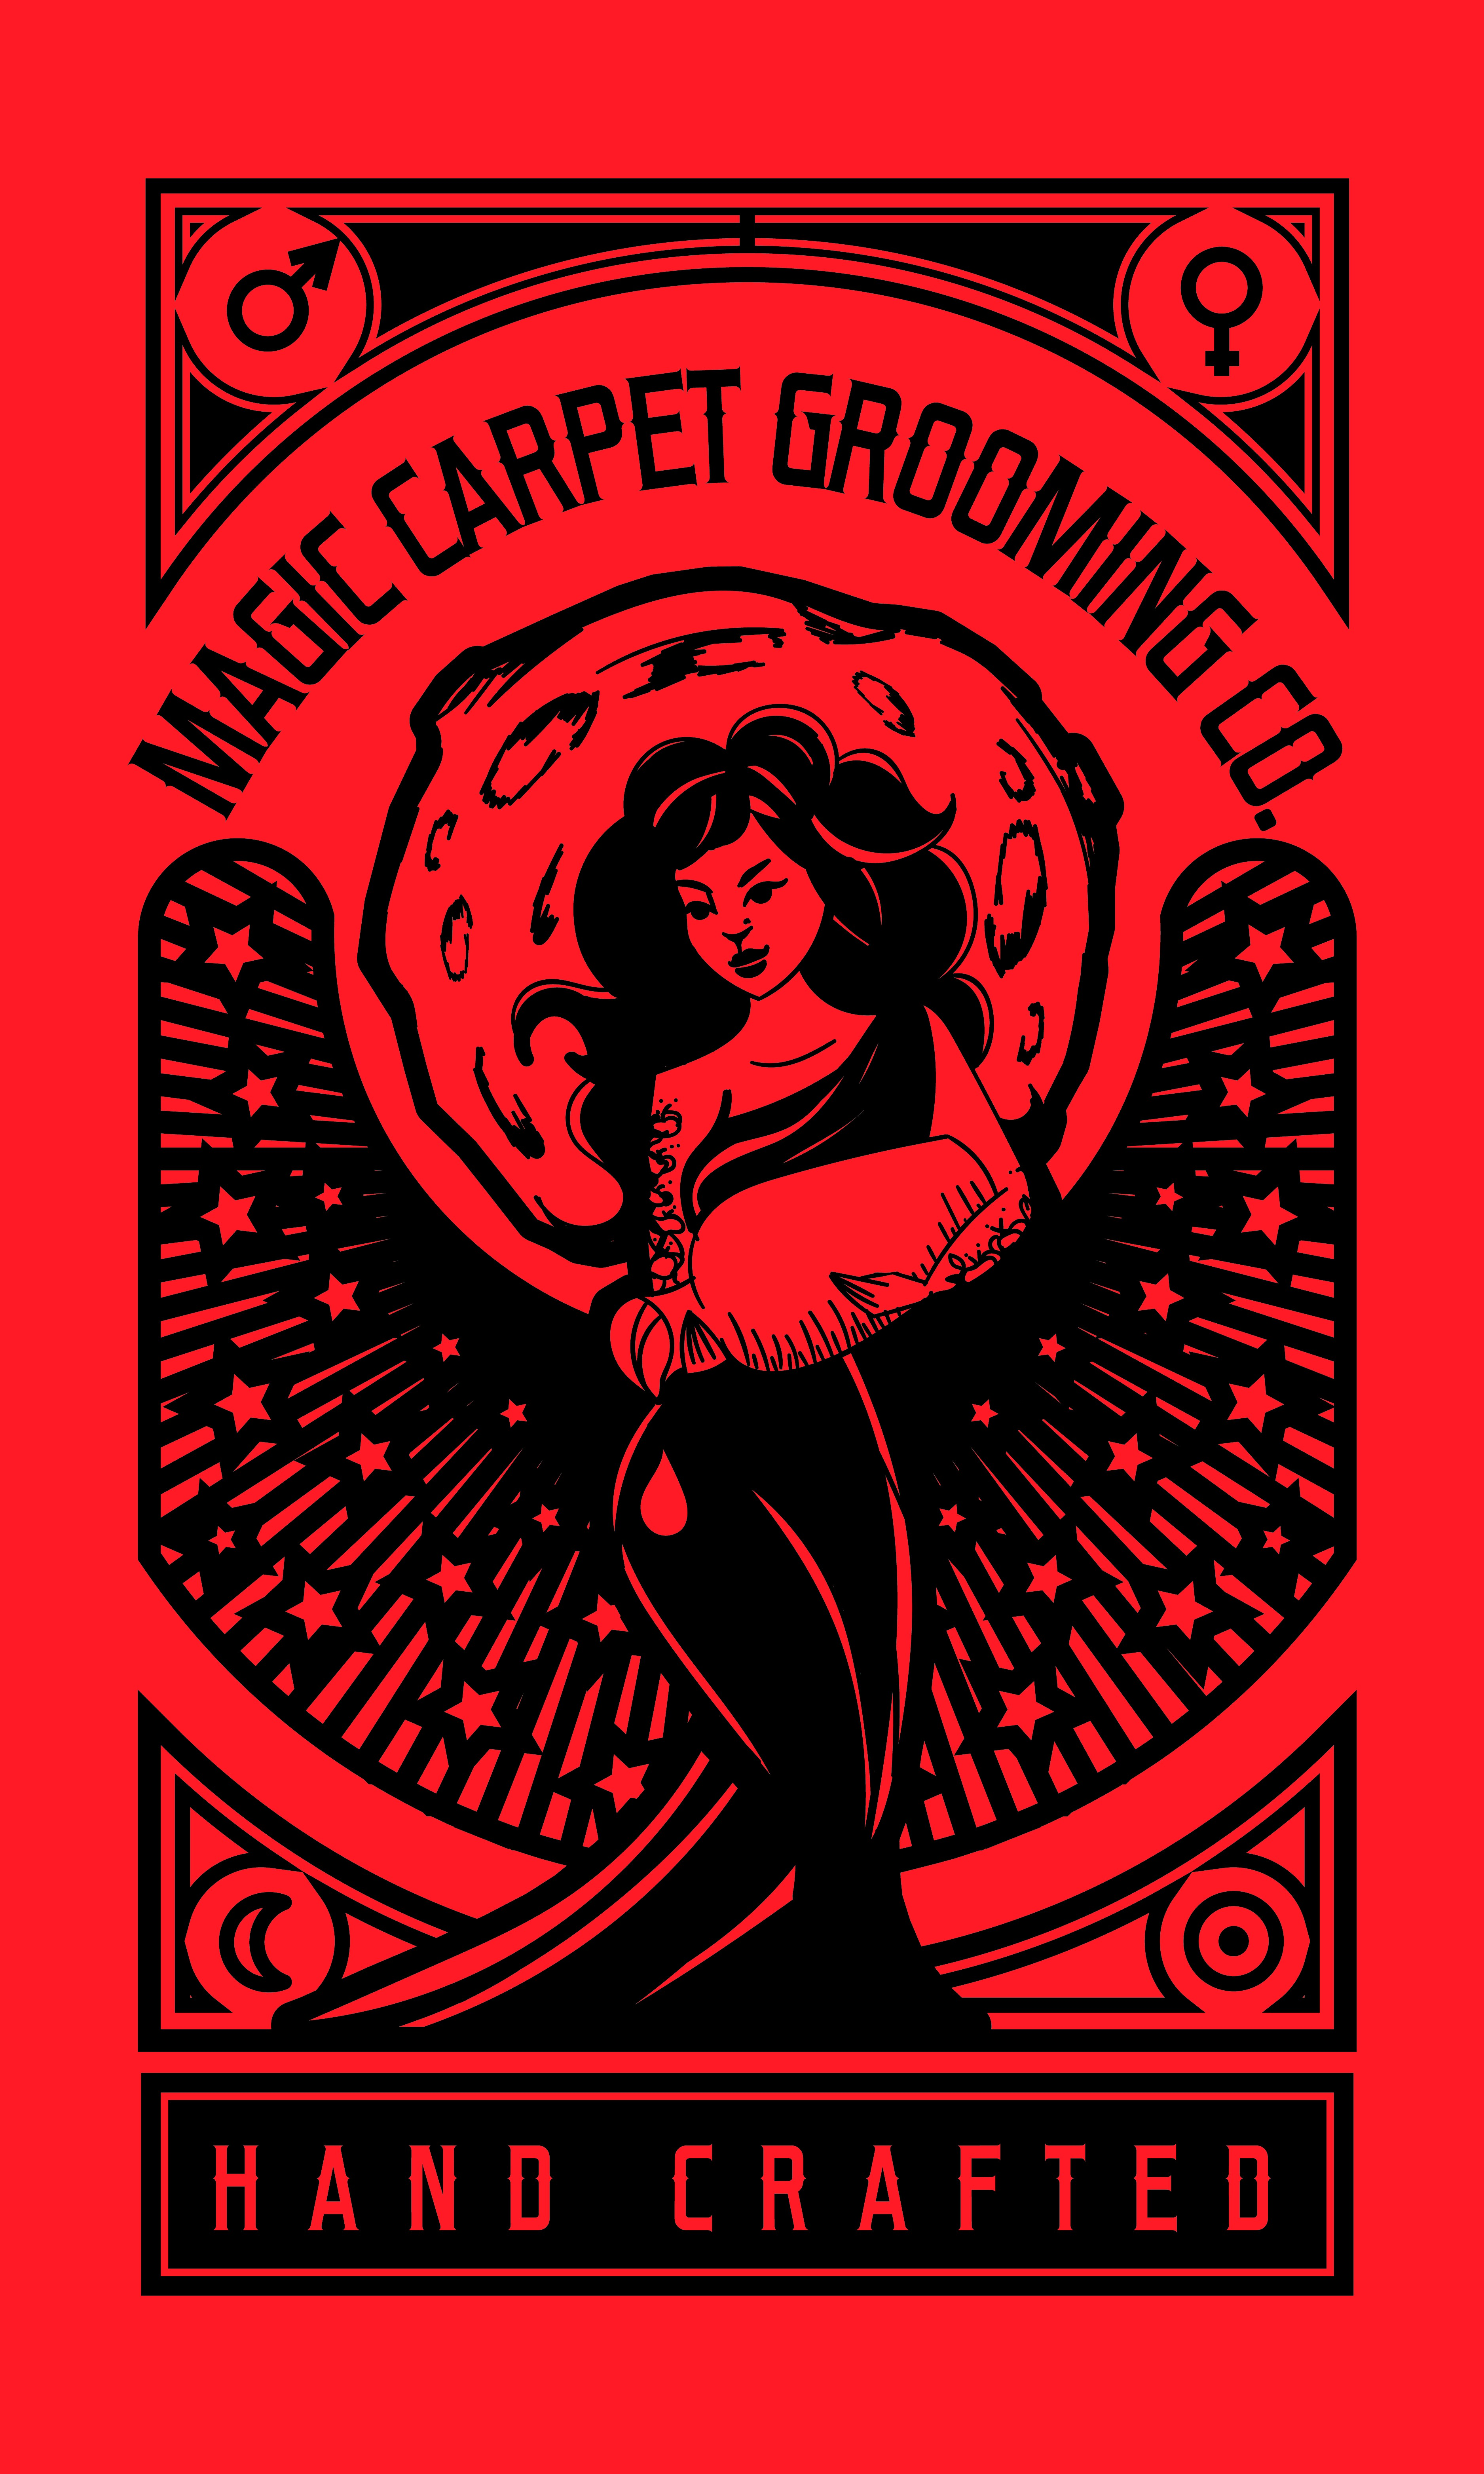 Create a mystical logo and website for the PUBIC HAIR revolution. (Magic Carpet Grooming Co.)